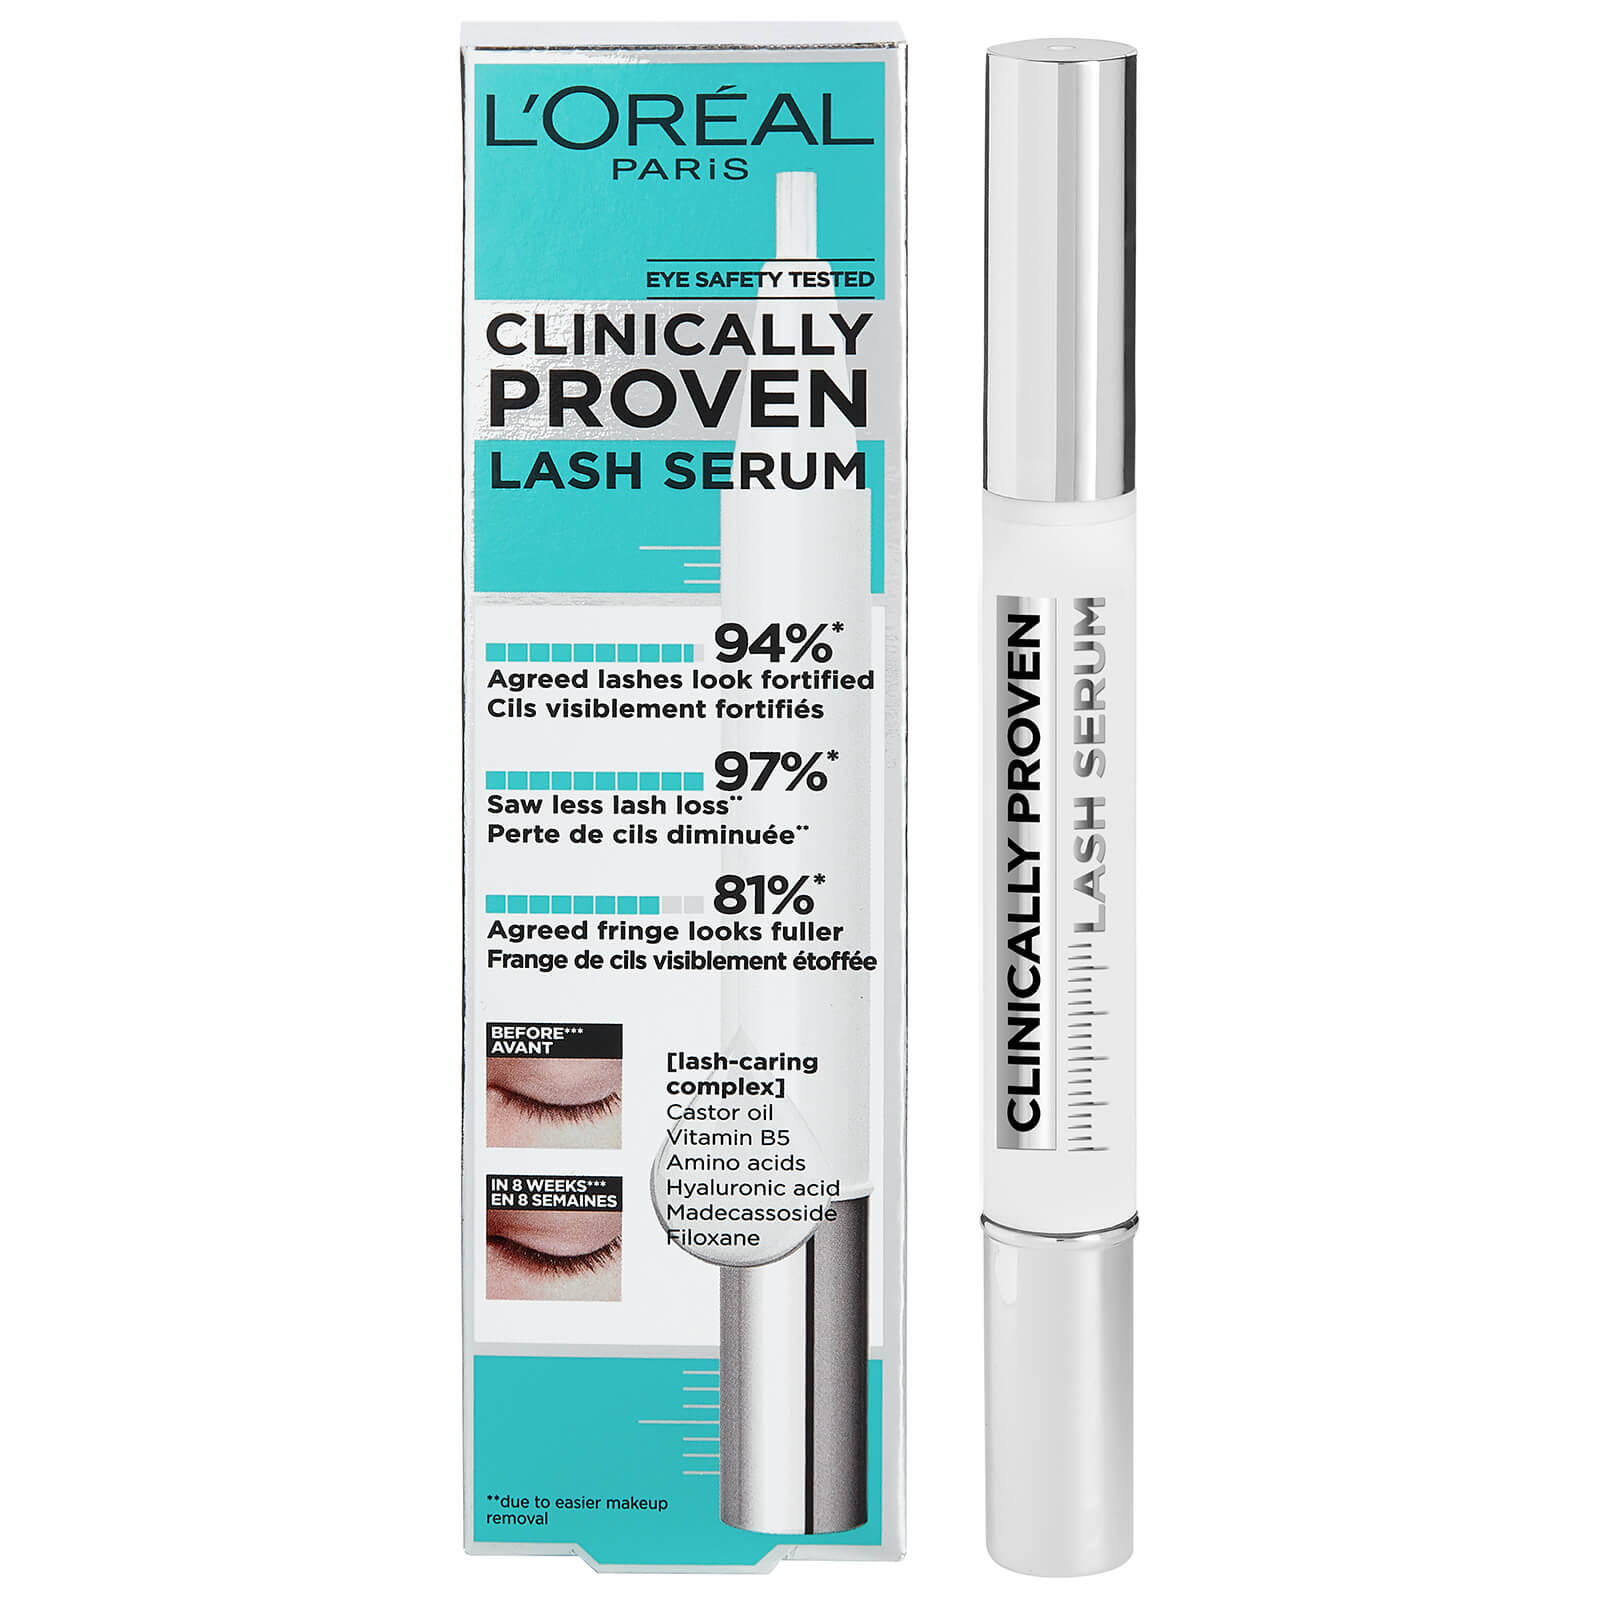 L'Oréal Paris Clinically Proven Výživové sérum na řasy 1,9g